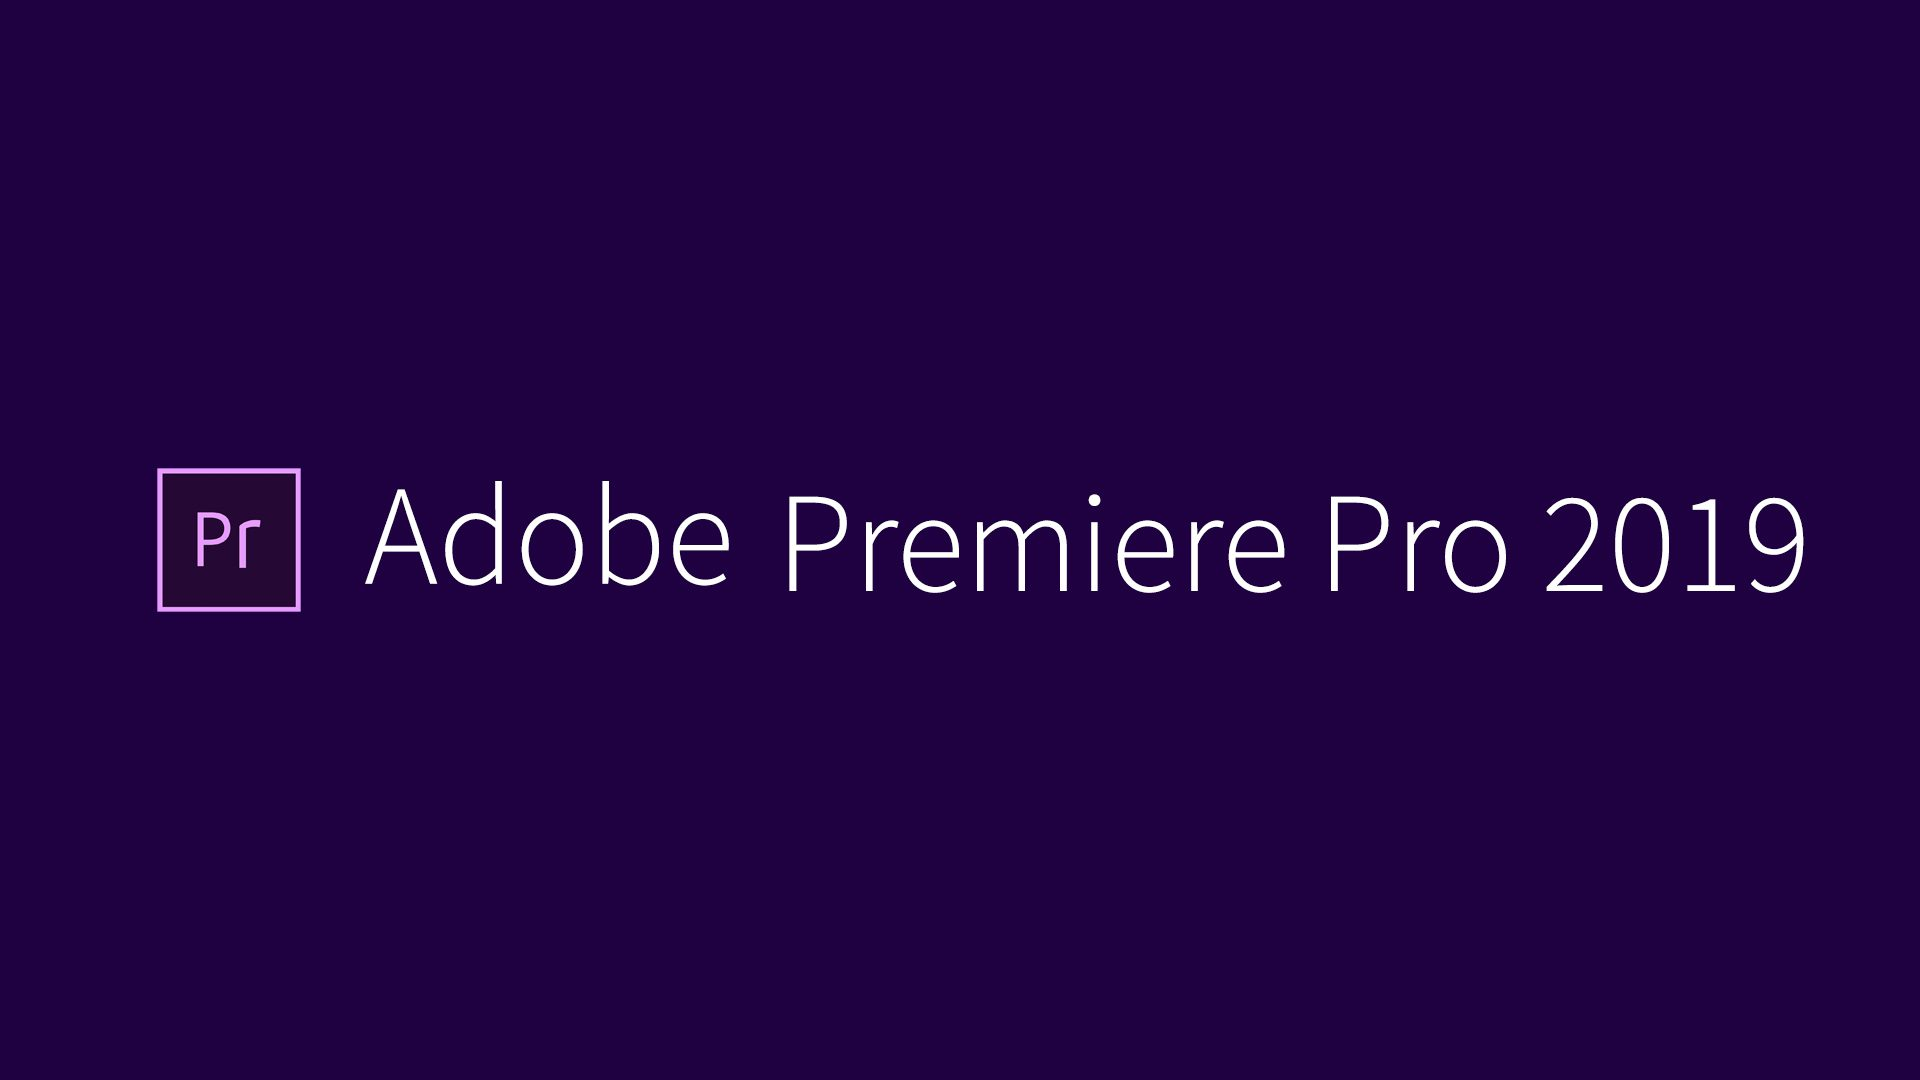 Premiere Pro CC 2019 Free Download - AGFY